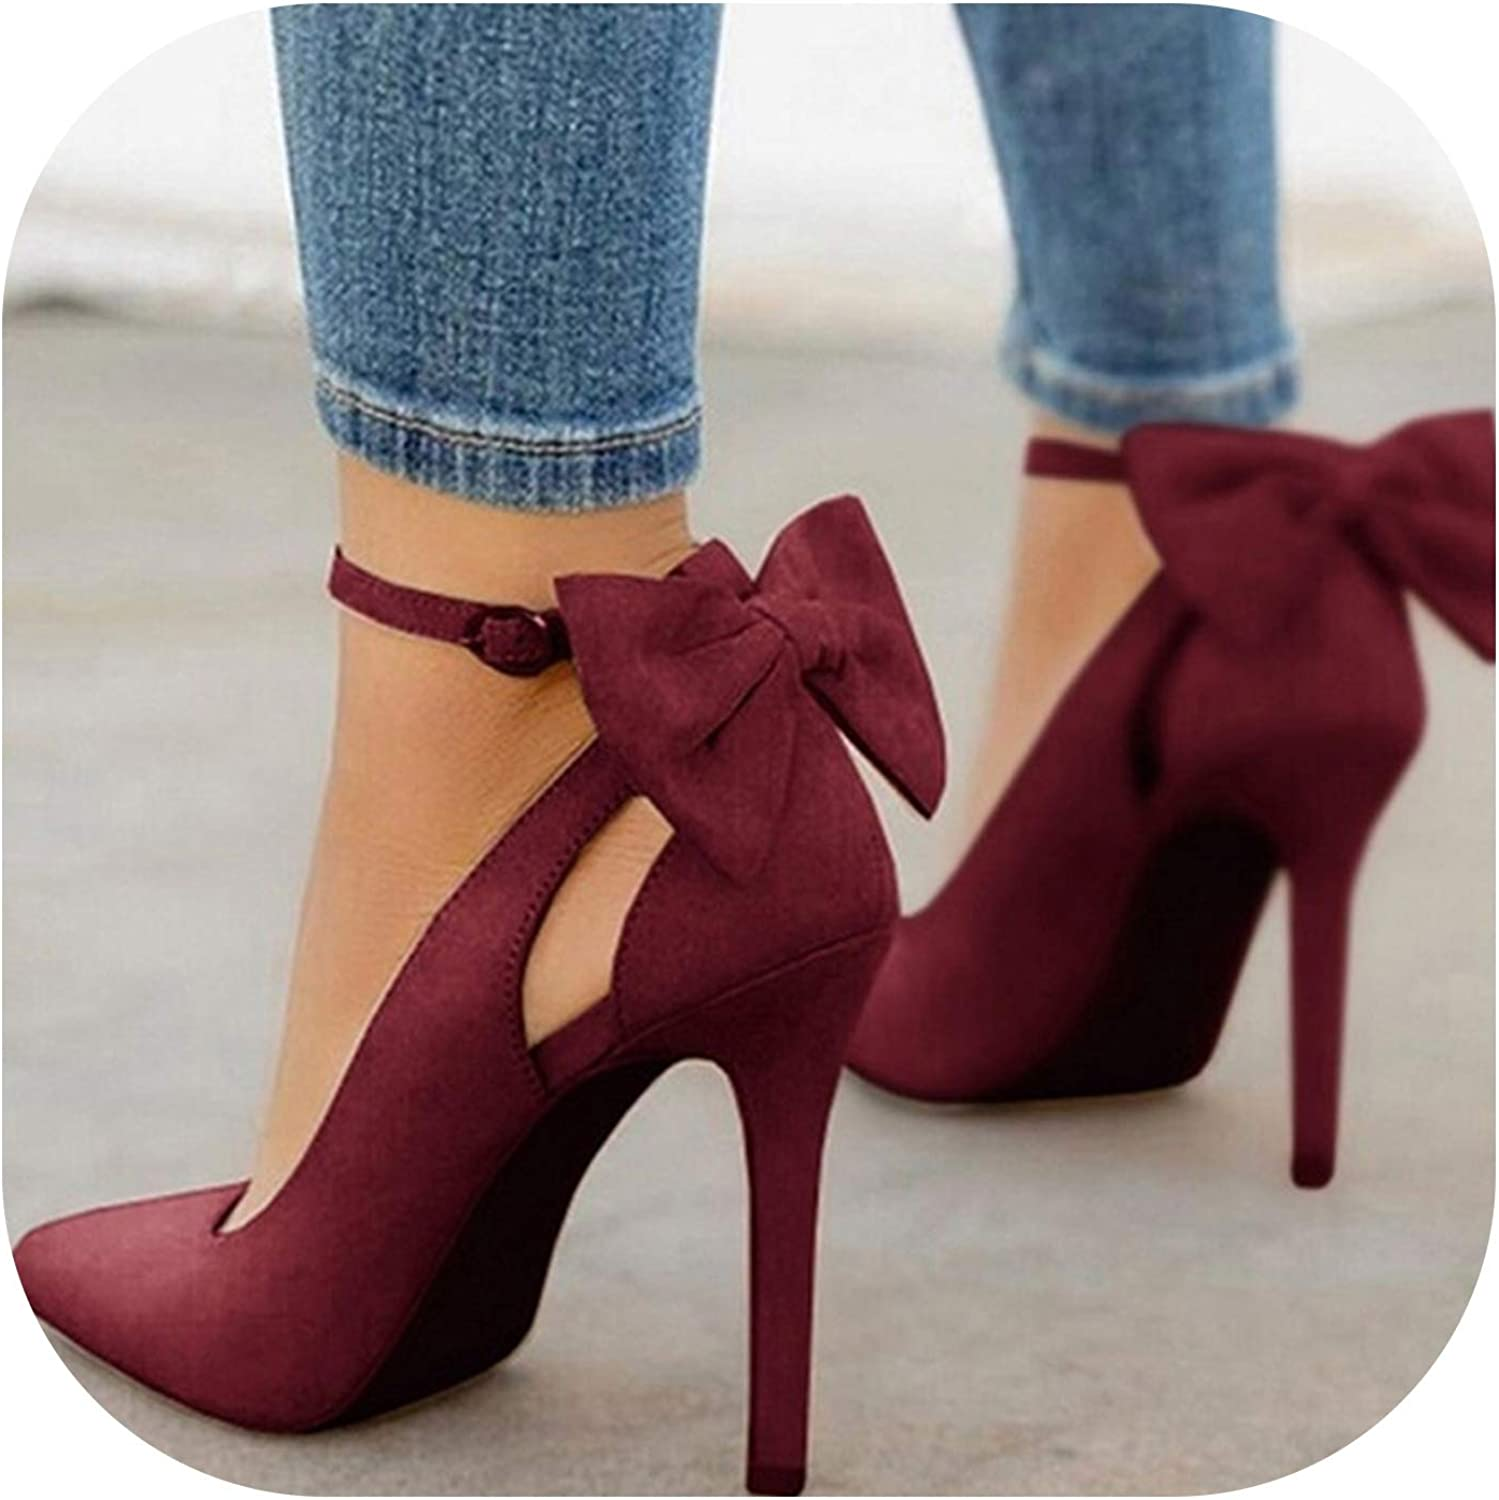 Women High Heels Pumps Women shoes Pointed Toe Buckle Strap Butterfly Summer Sexy Party shoes Wedding shoes De